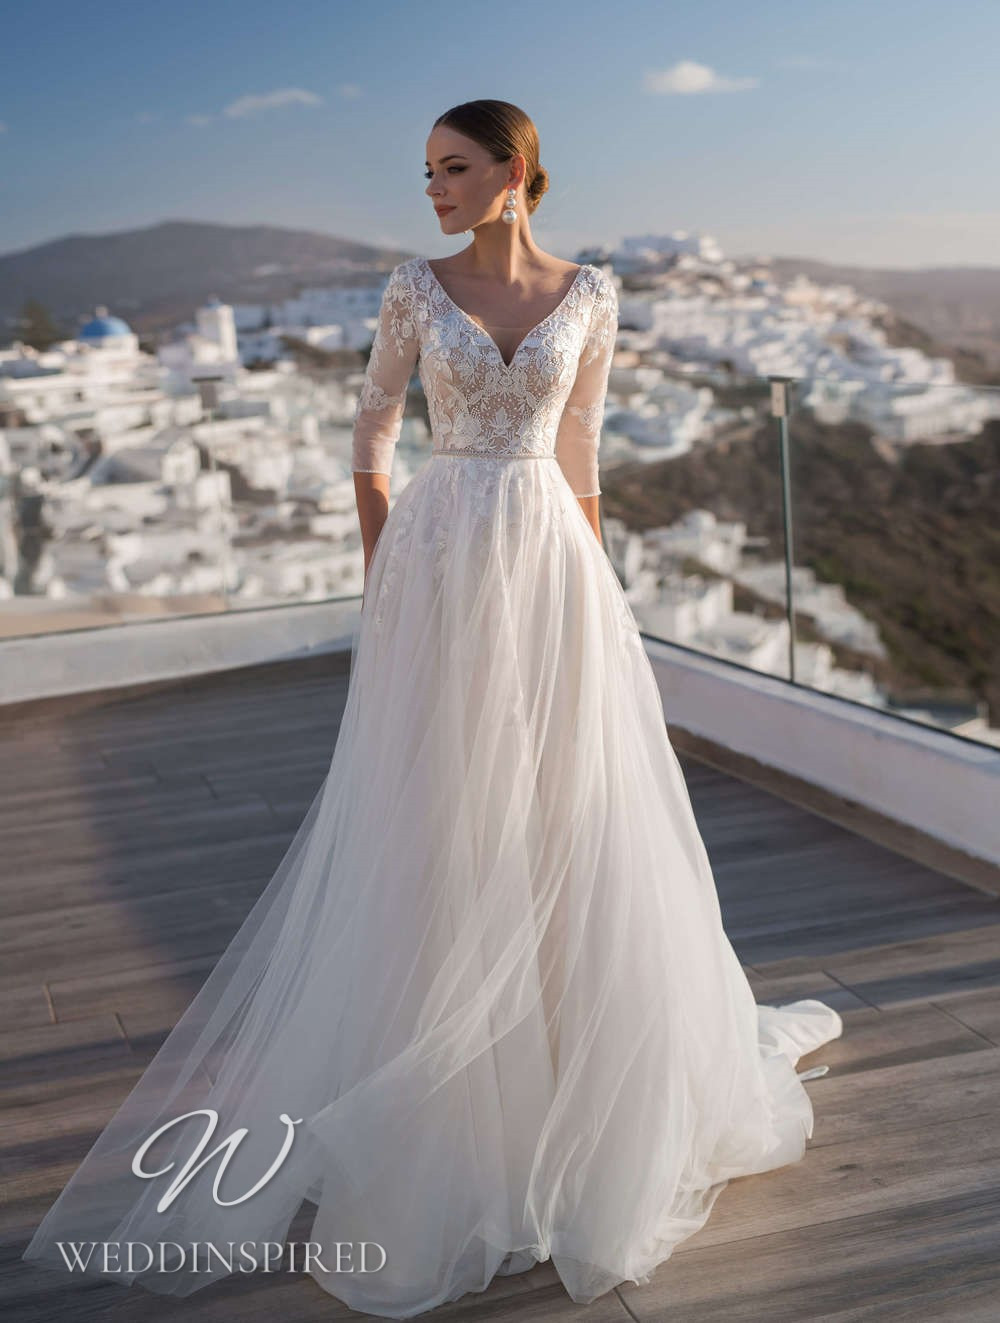 A Blunny 2021 flowy tulle A-line wedding dress with 3/4 sleeves